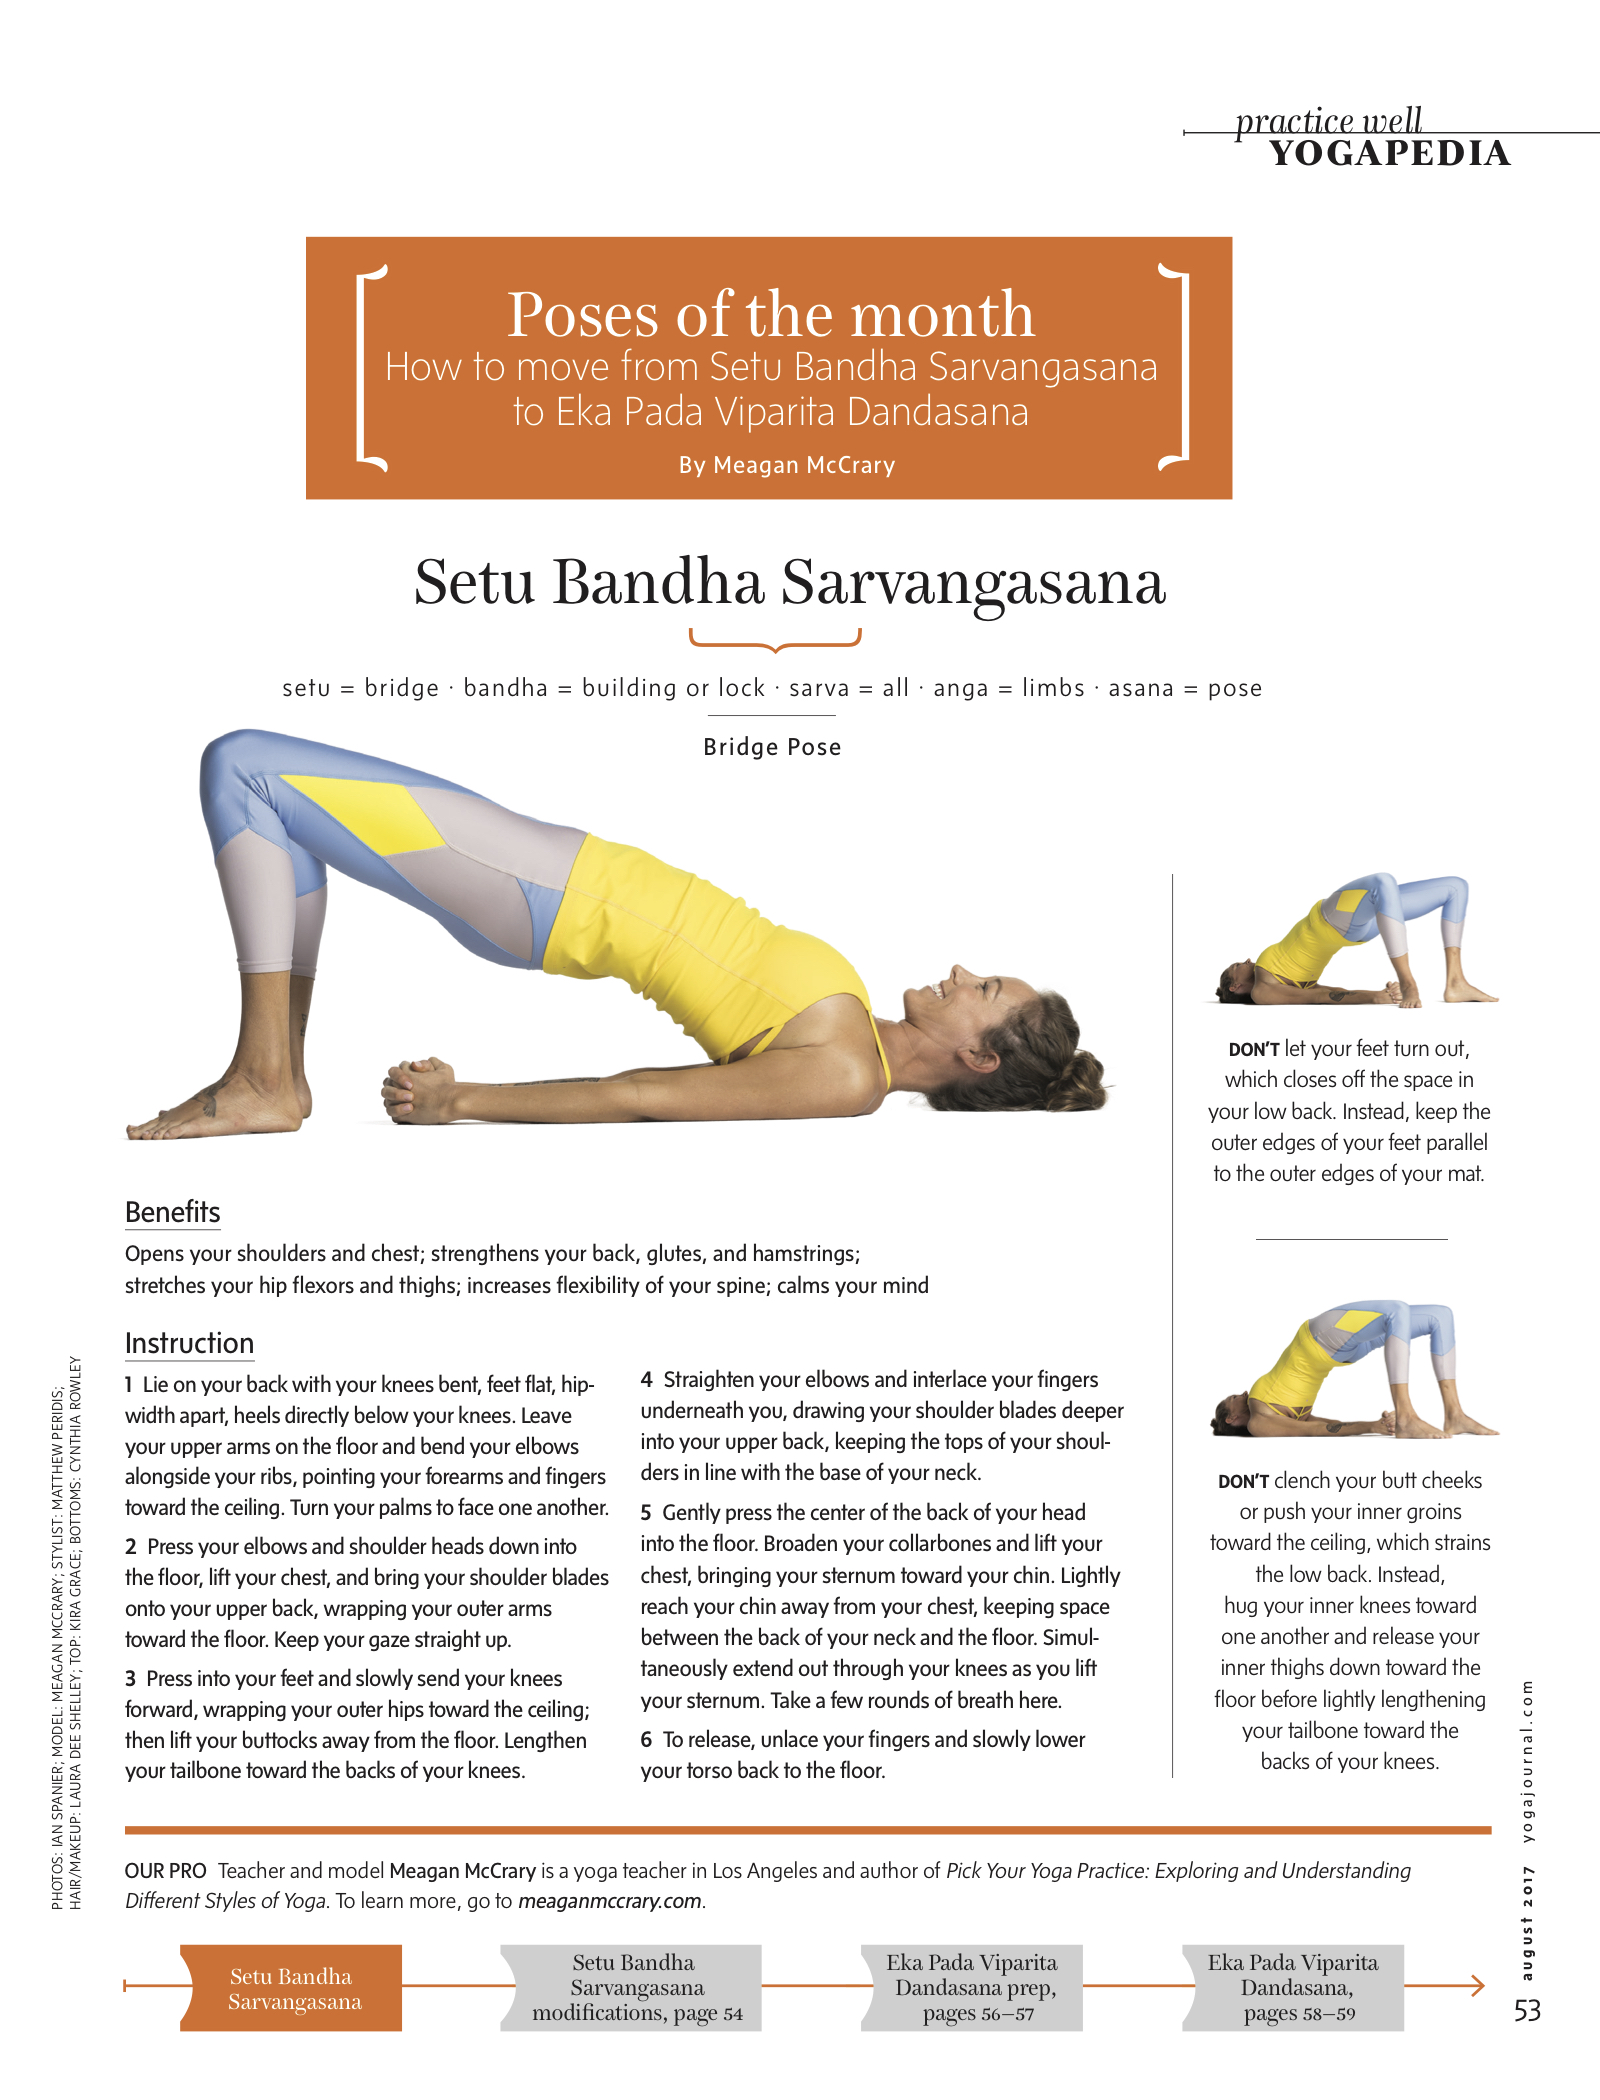 Yogapedia_288 copy.jpg